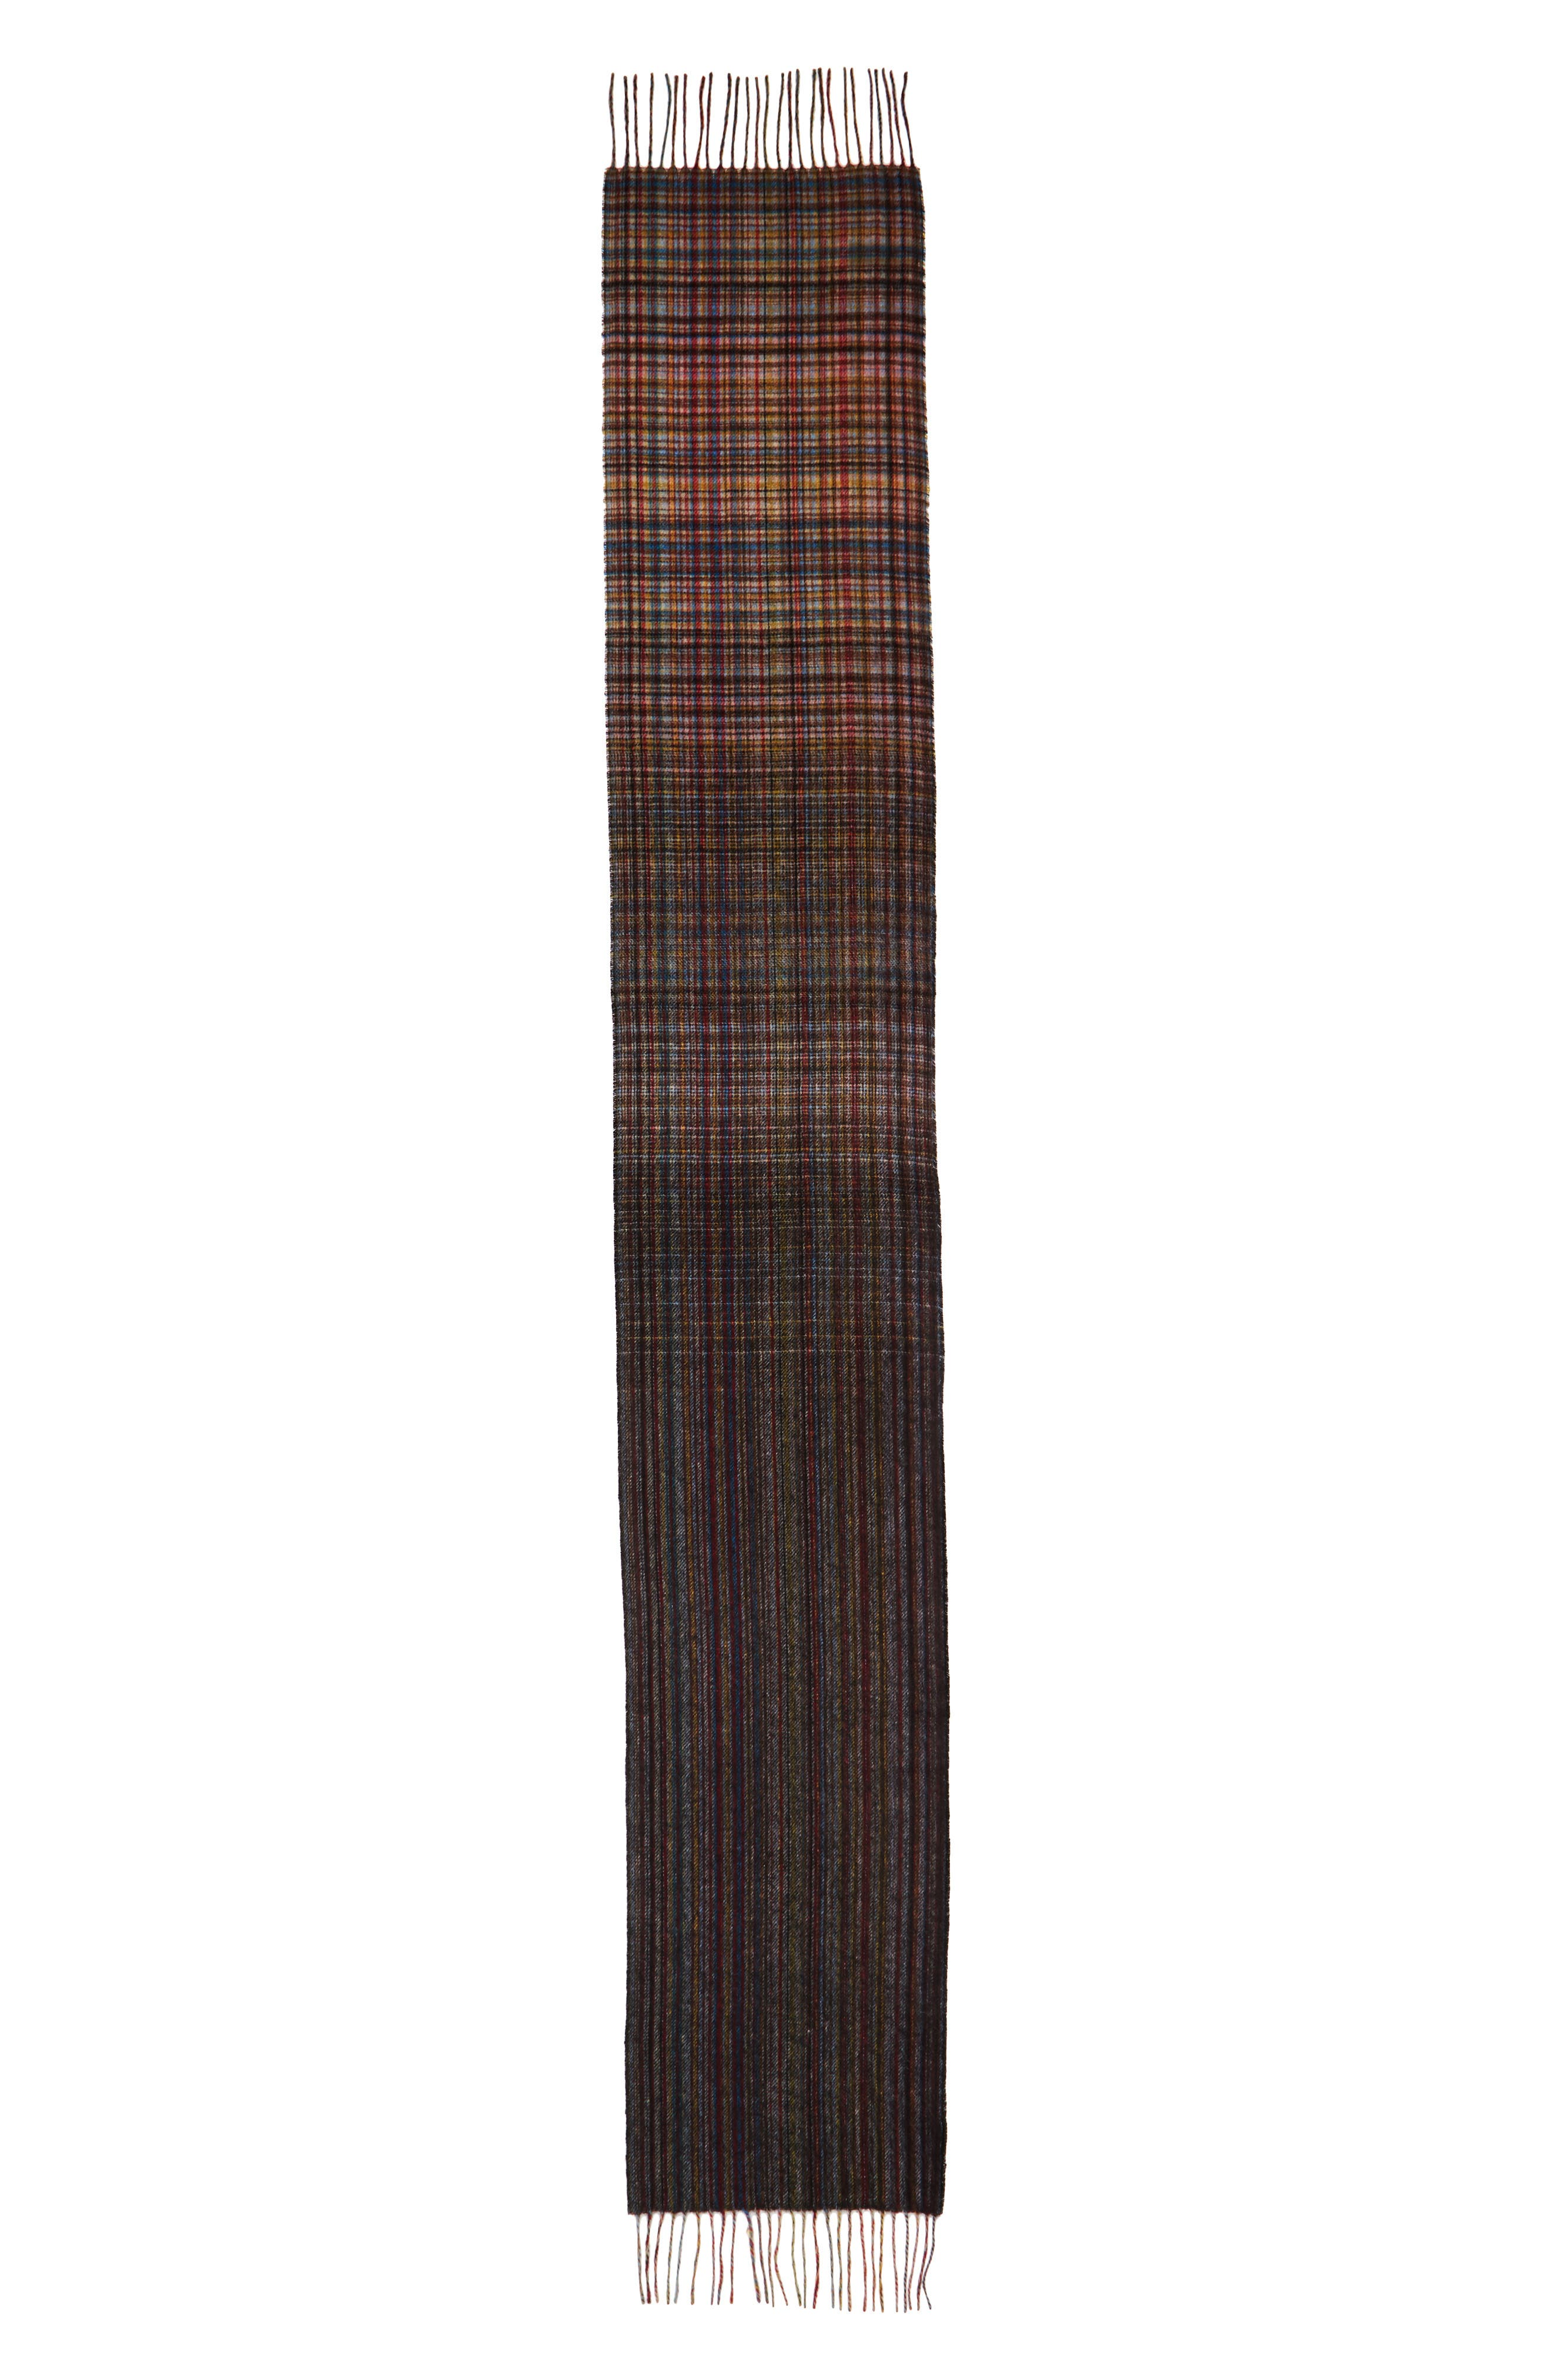 Multistripe Check Lambswool Scarf,                             Alternate thumbnail 2, color,                             460